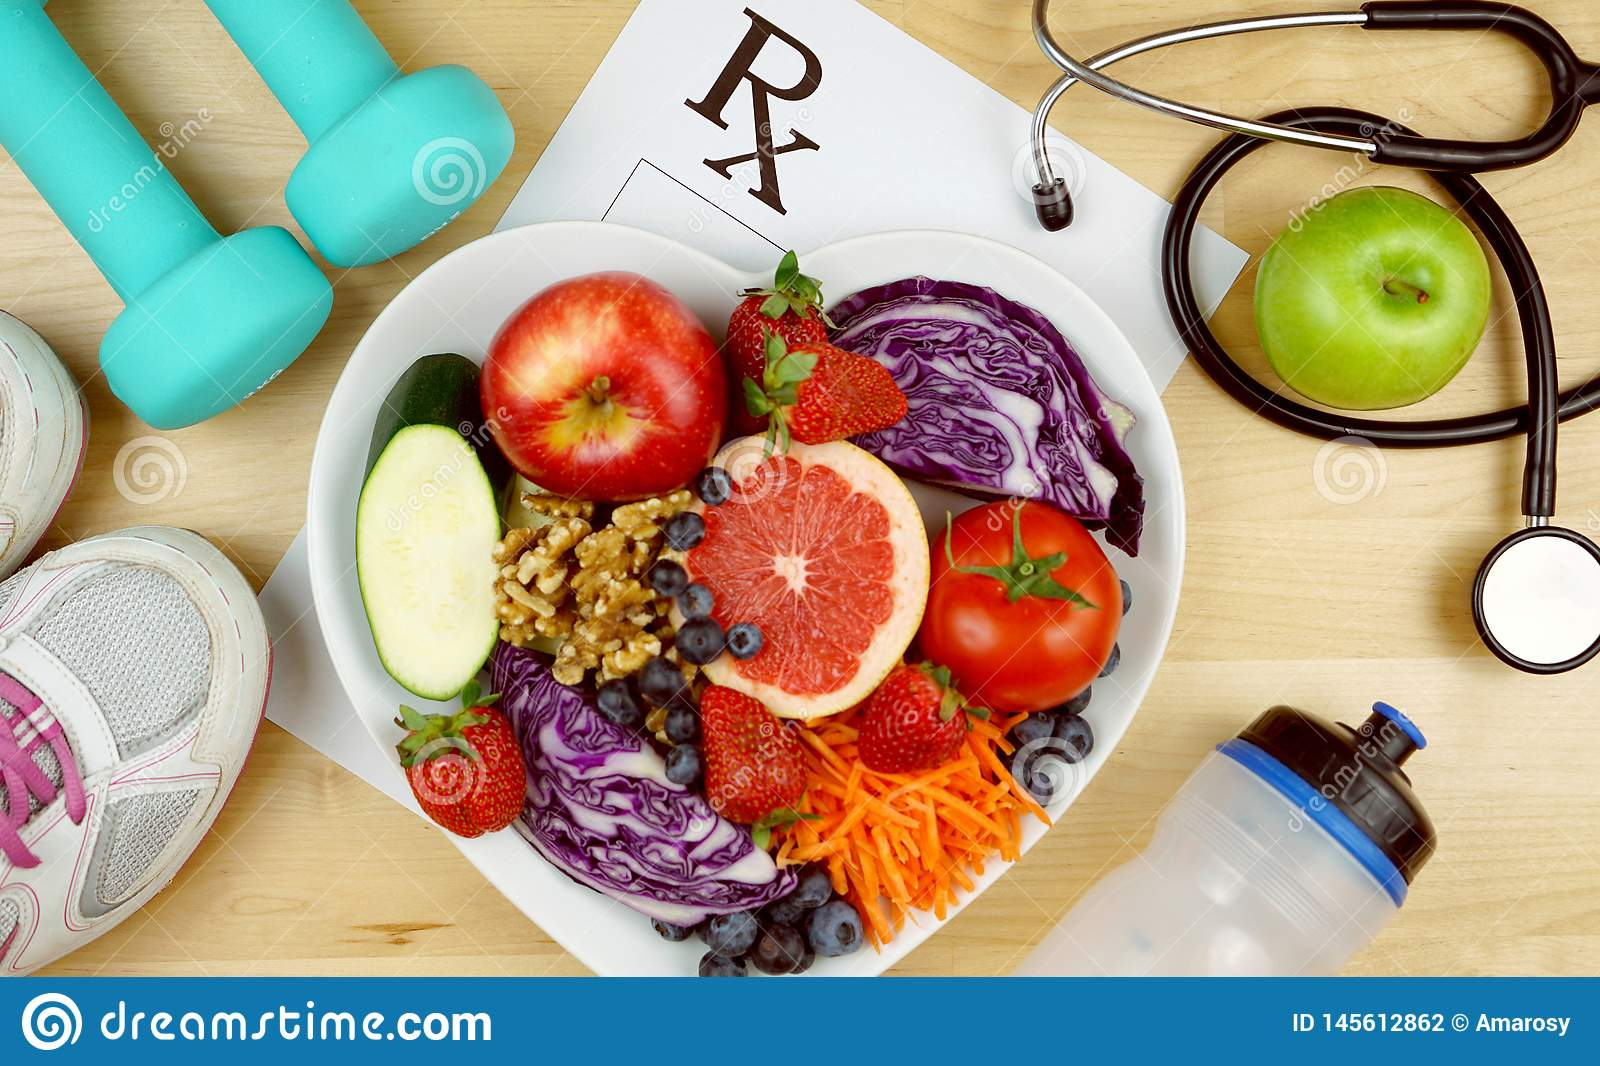 How Does Good Nutrition Relate To Exercise